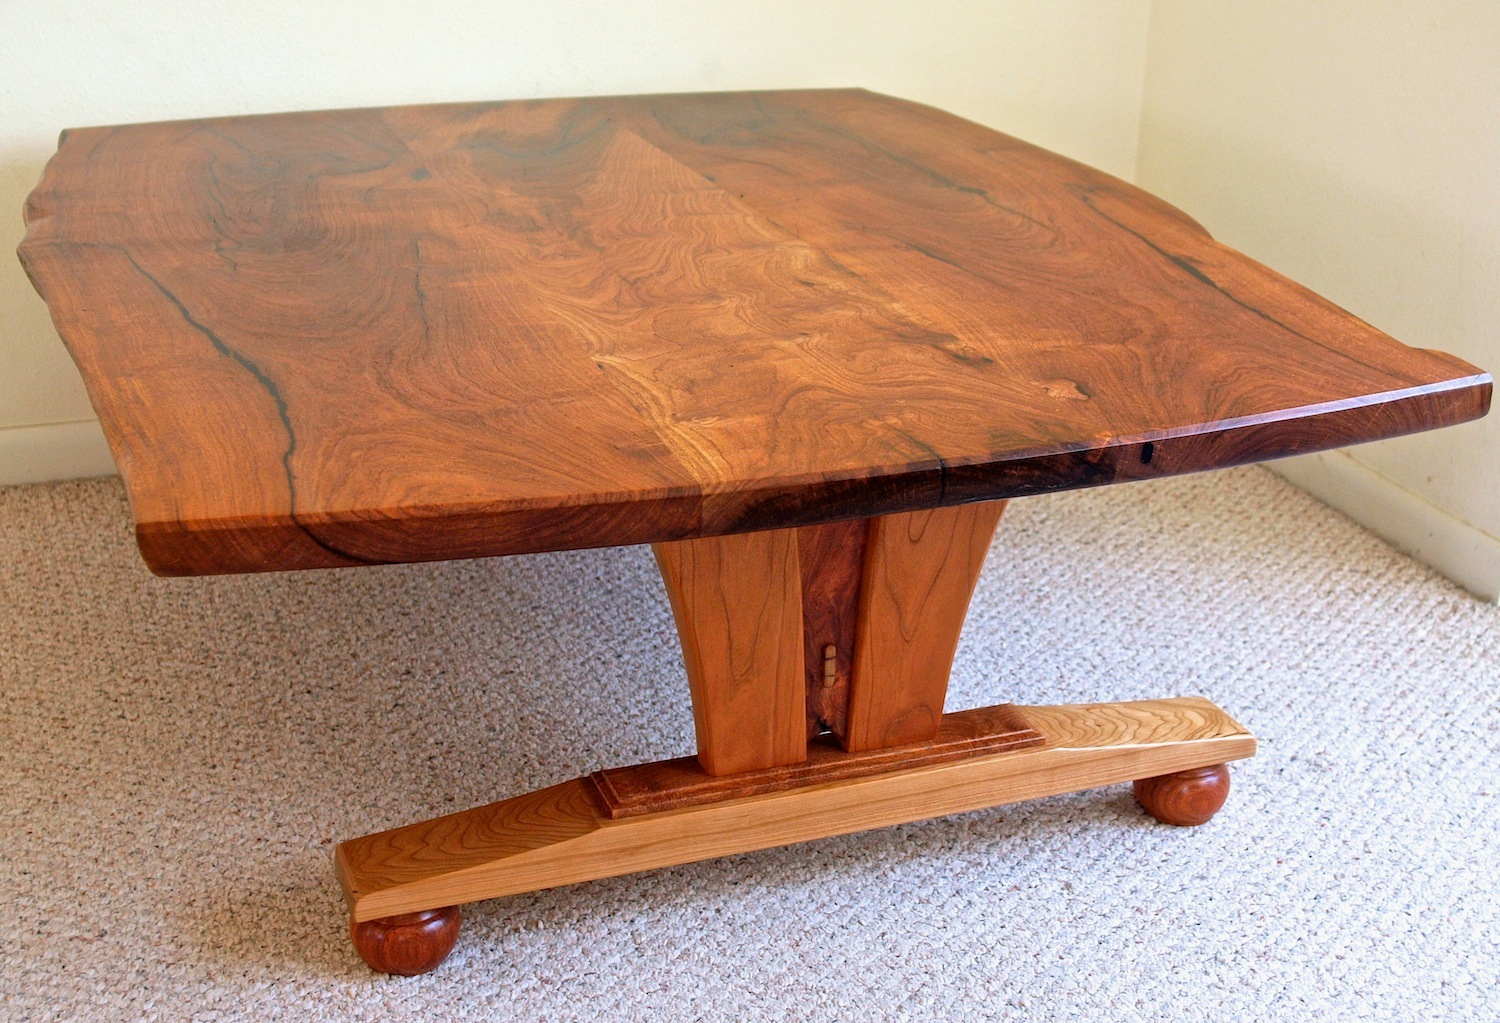 More of my tables can be seen at my website . Thanks!